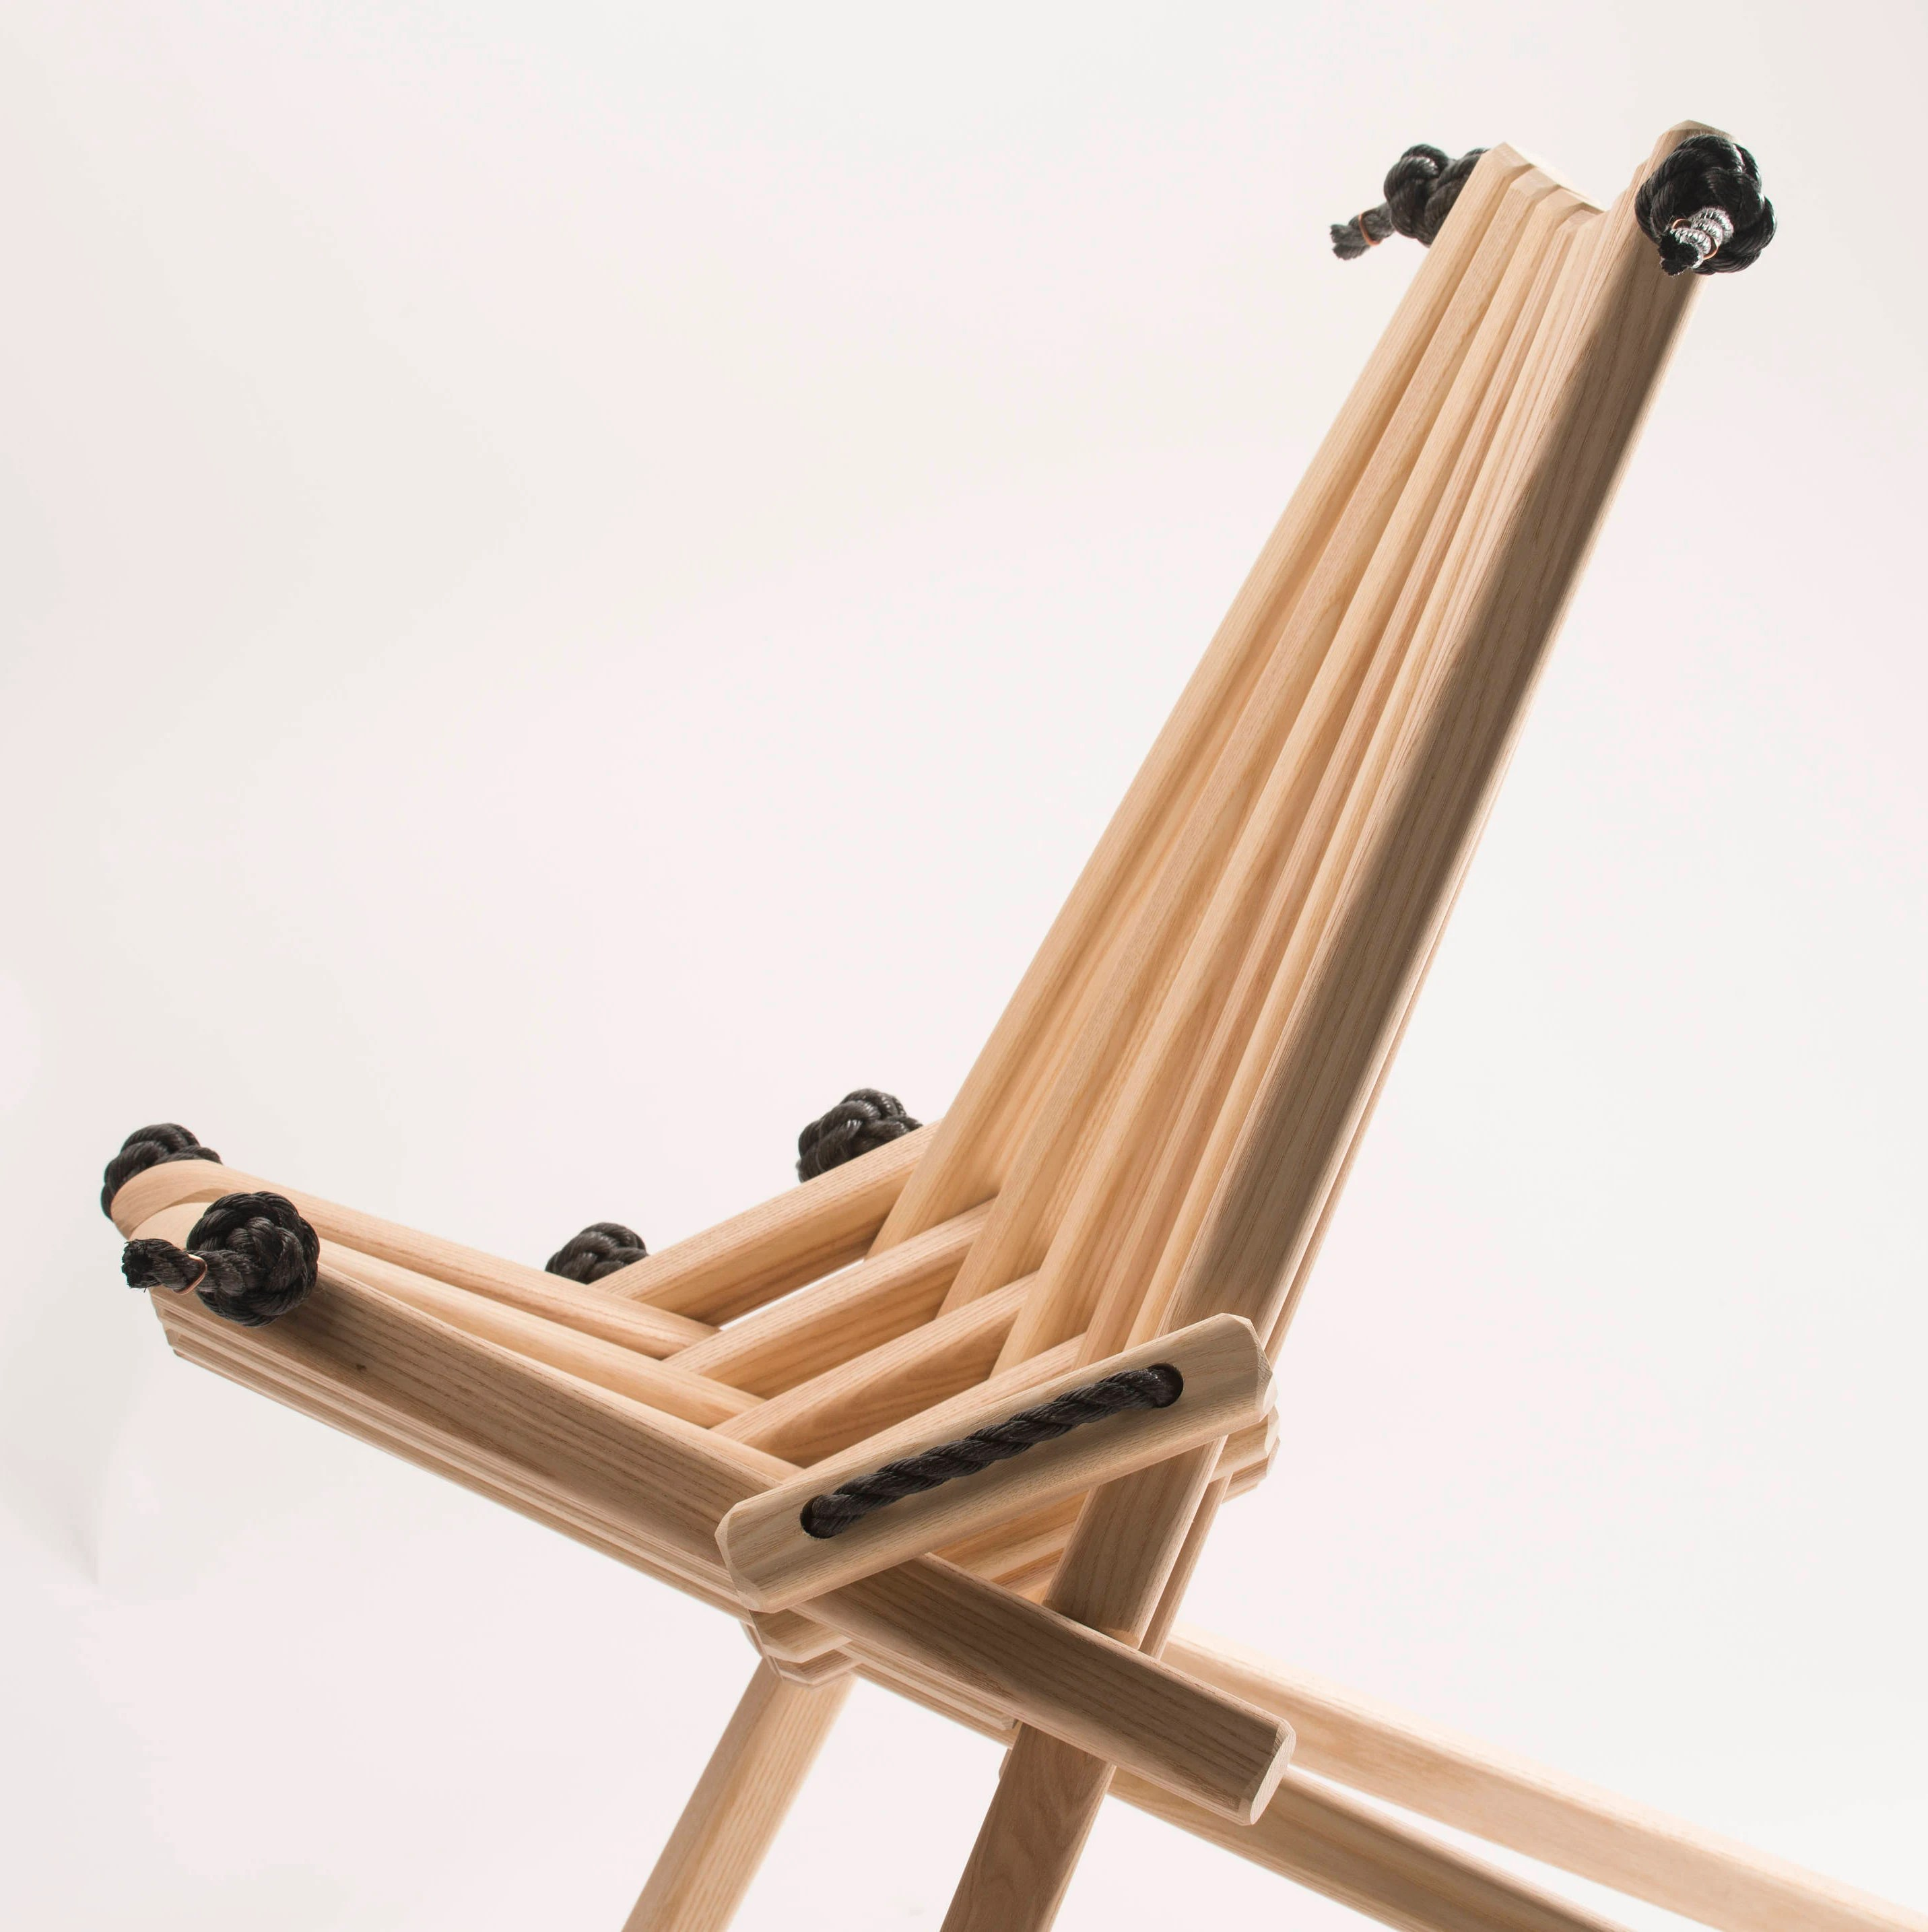 folding chairs wooden small recliner chair special edition ash pioneer stick etsy image 0